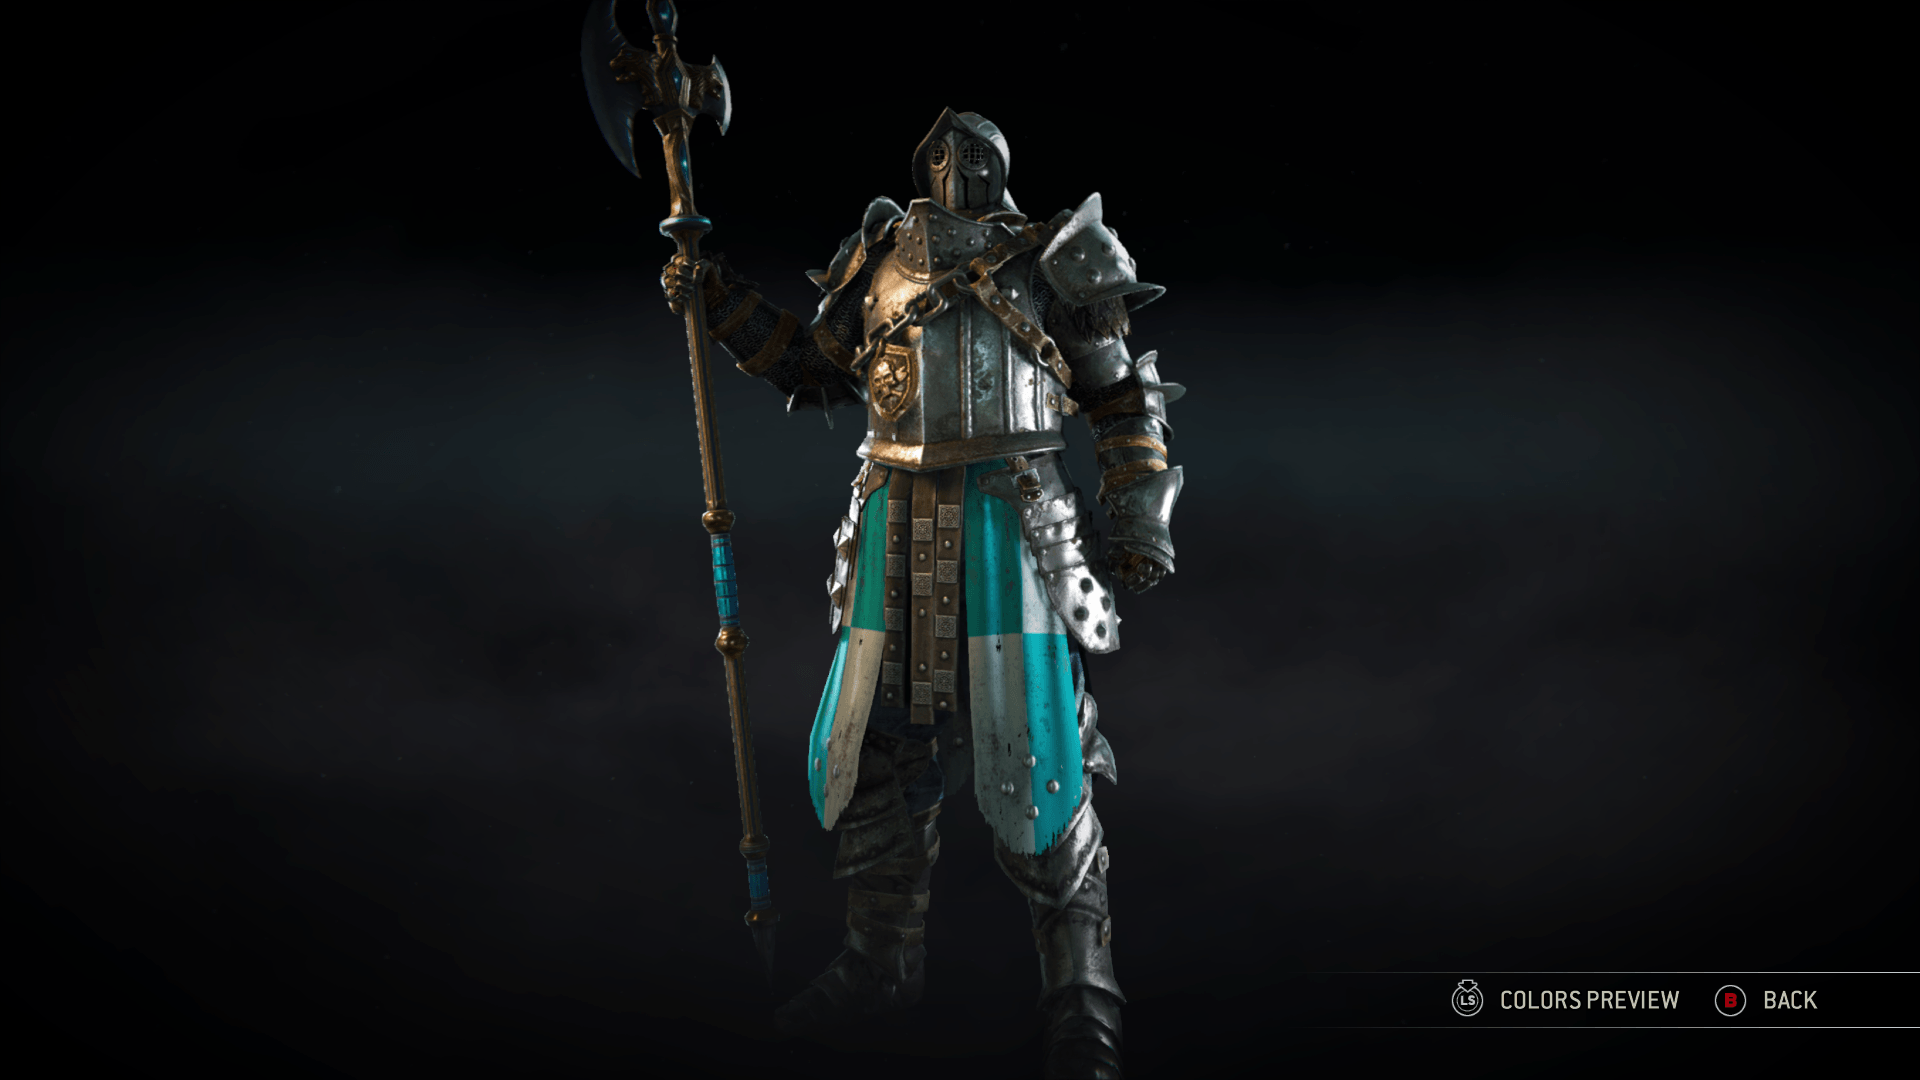 1920x1080 Lawbringer: Both new Armor Sets and 4/5 new Weapon Sets - Album on Imgur